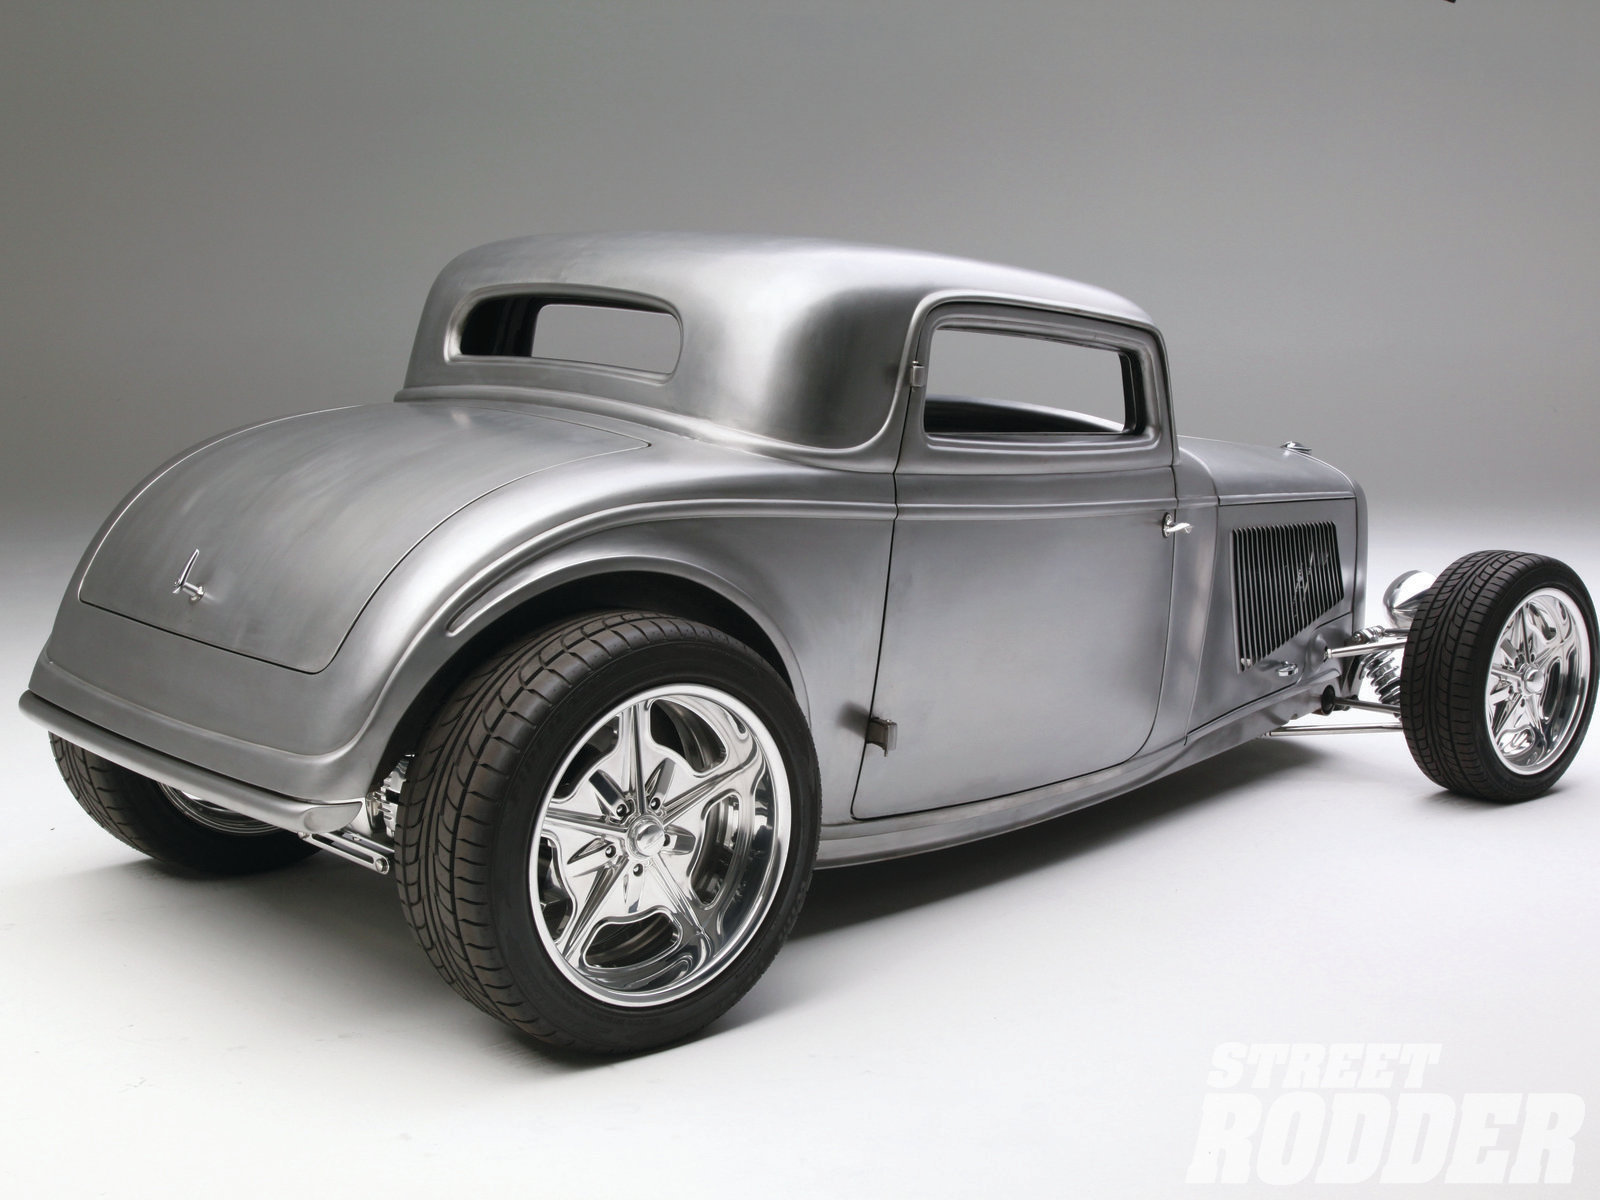 21| Warren's coupe is a combination of both '32 and '33 Ford styling cues, and Walden Speed Shop was able to expertly blend the two looks together into one impressive design.